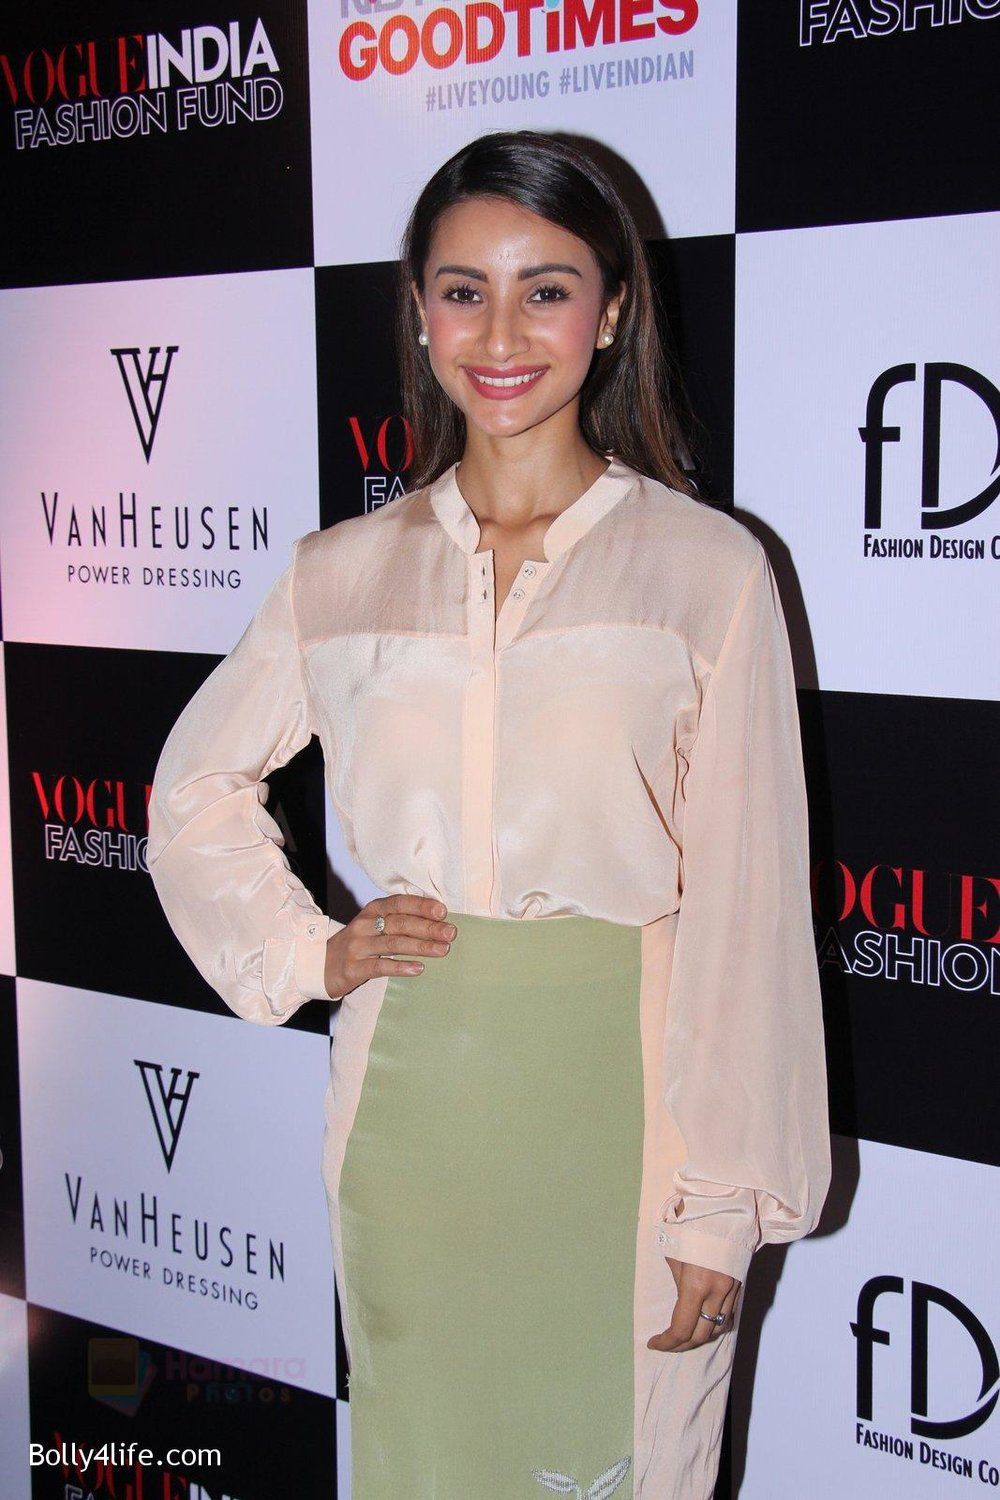 Patralekha-at-Vogue-India-Fashion-Fund-Event-1.jpg